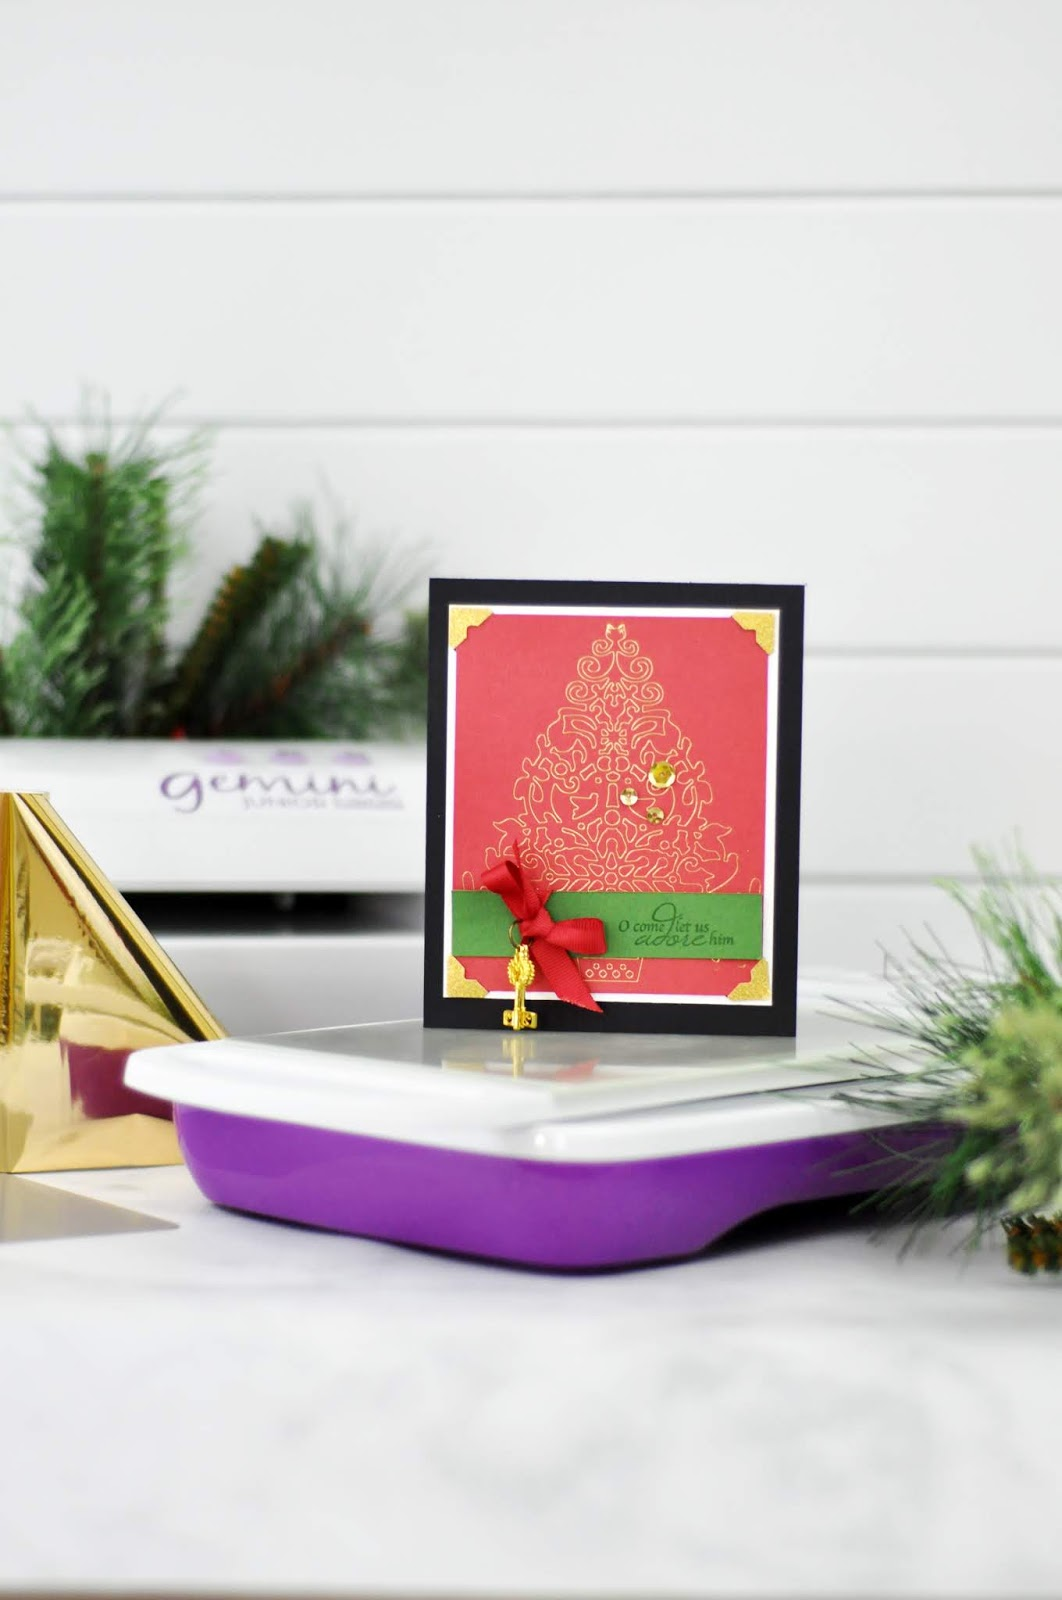 Gemini Foil Press Christmas Card with foil accents by Jen Gallacher for Crafter's Companion. #foilcard #foileffects #christmascard #geminifoilpress #jengallacher #crafterscompanion